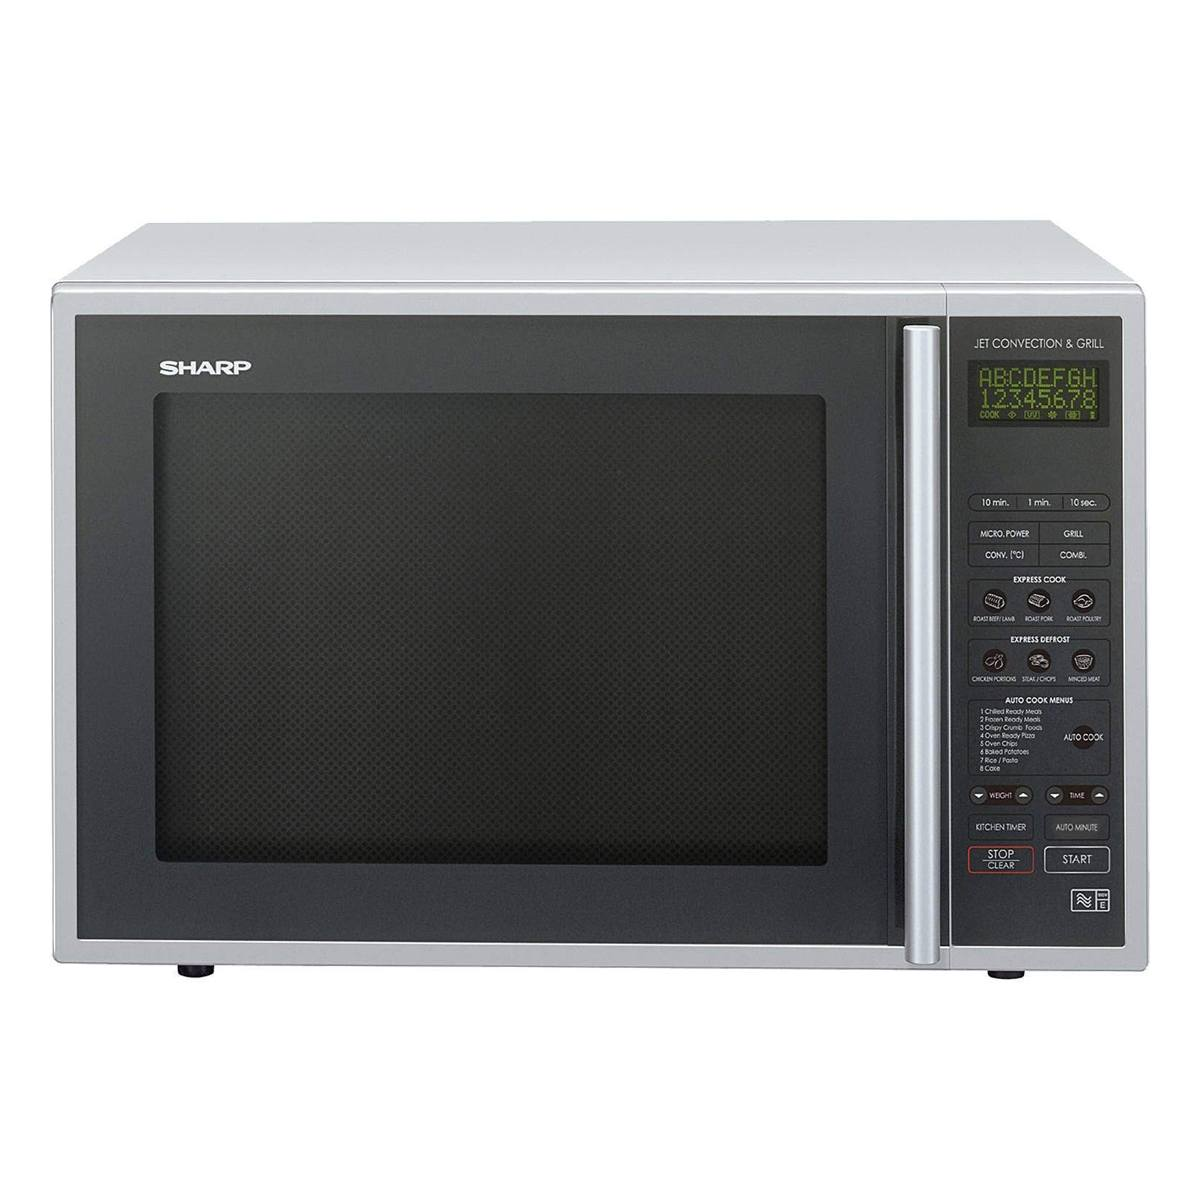 Sharp R959slmaa 900w 40litre Convection Grill Microwave In